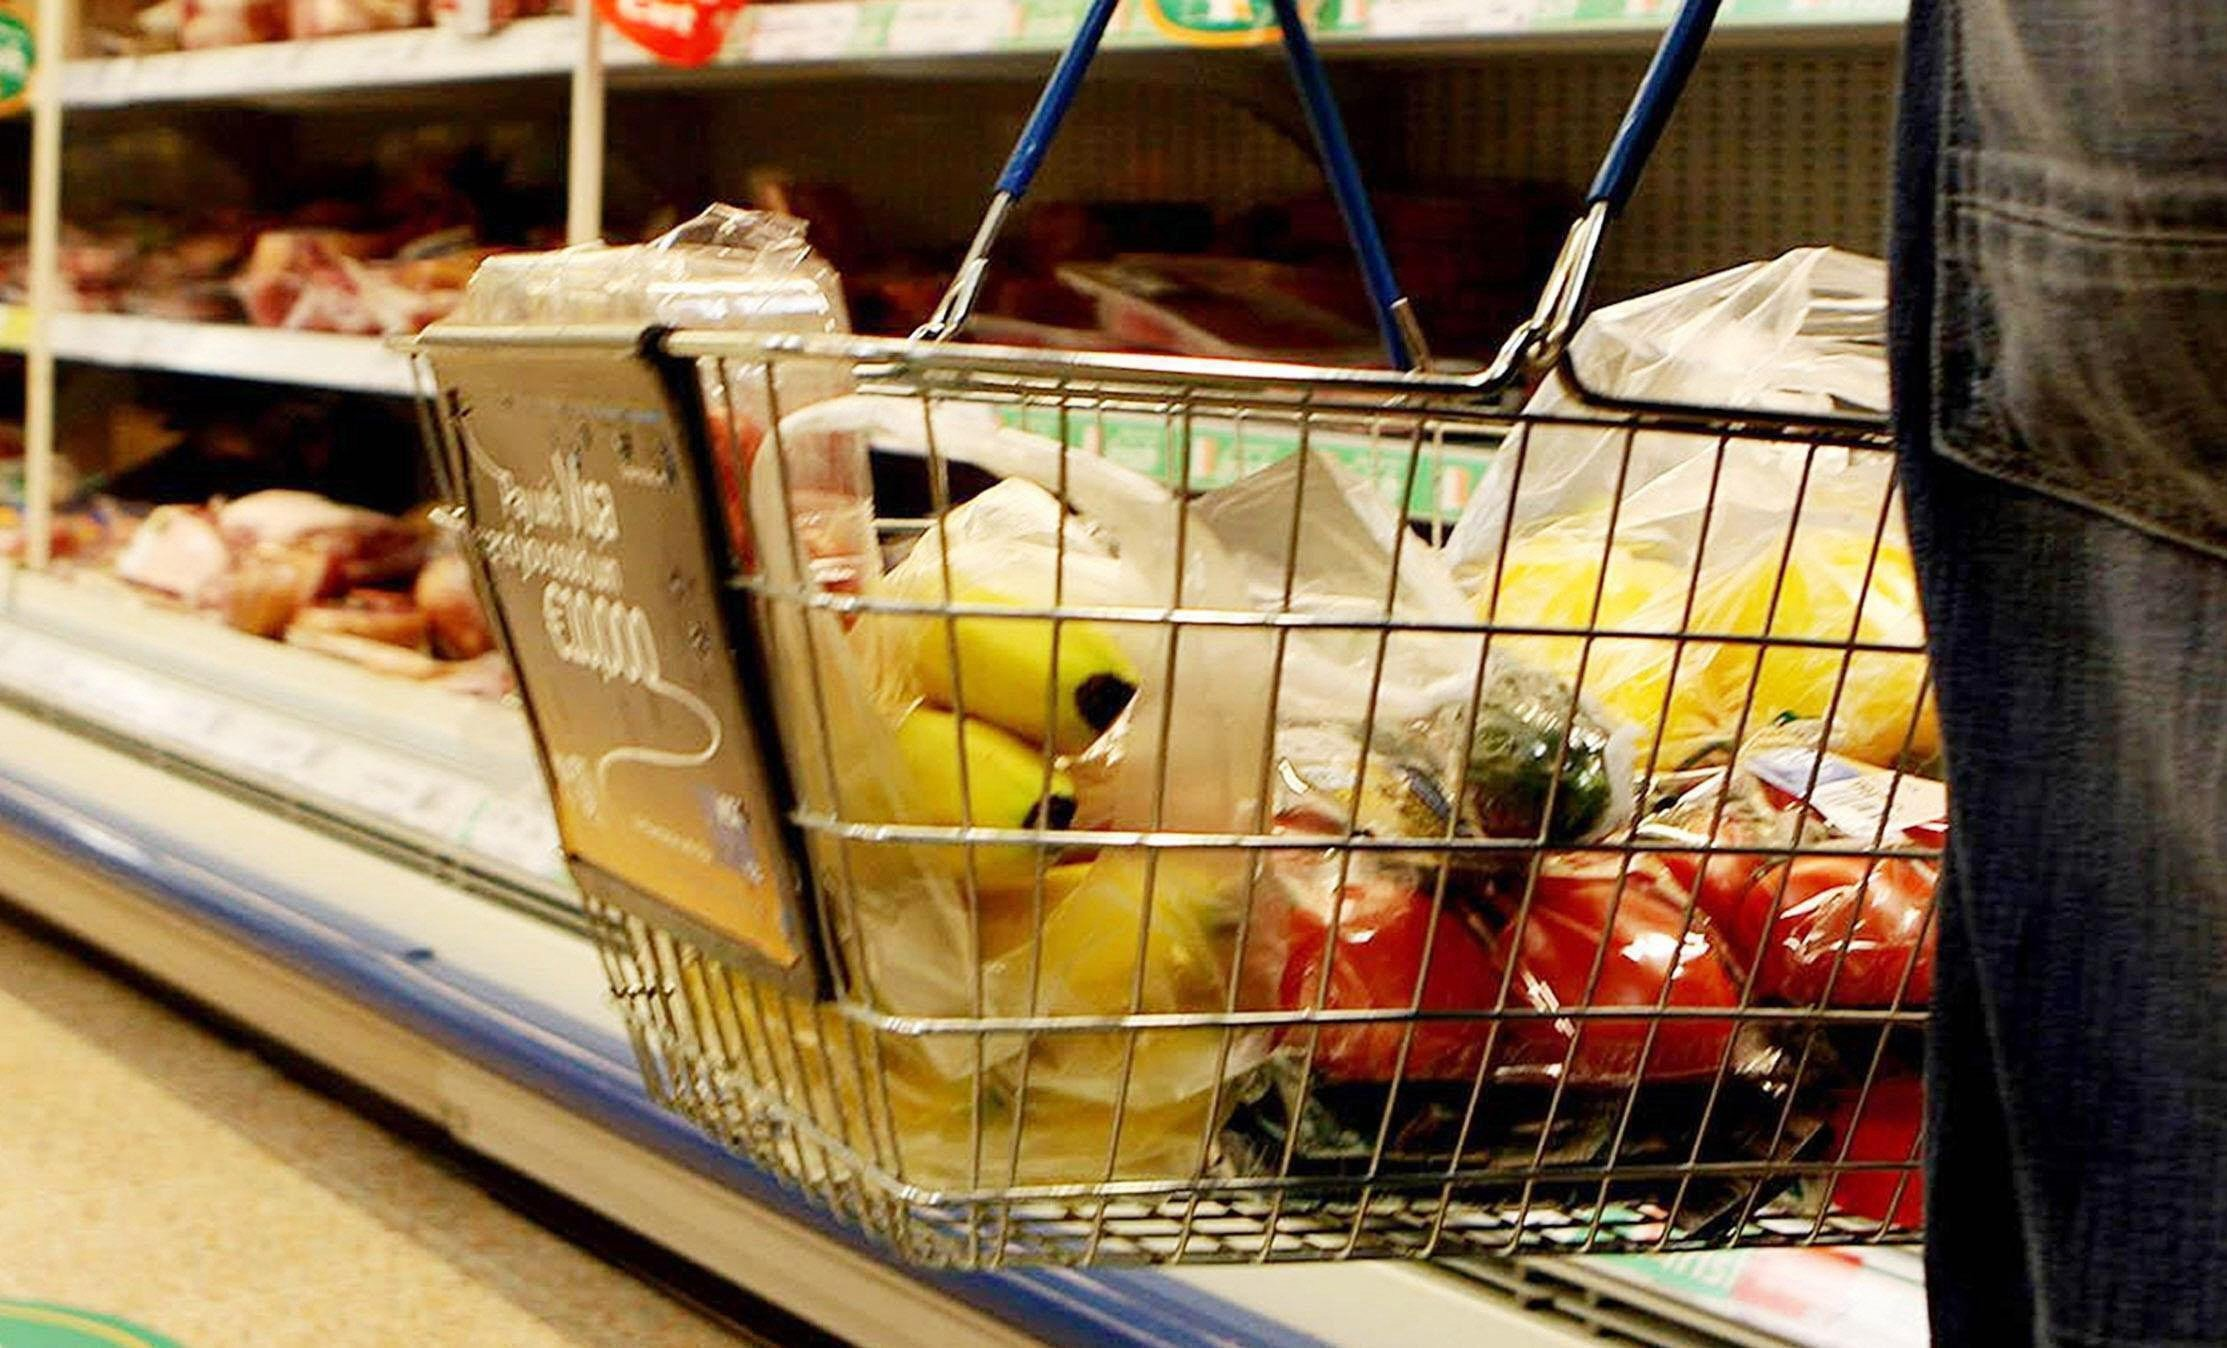 Food prices rise at fastest rate in six years and it's going to get worse